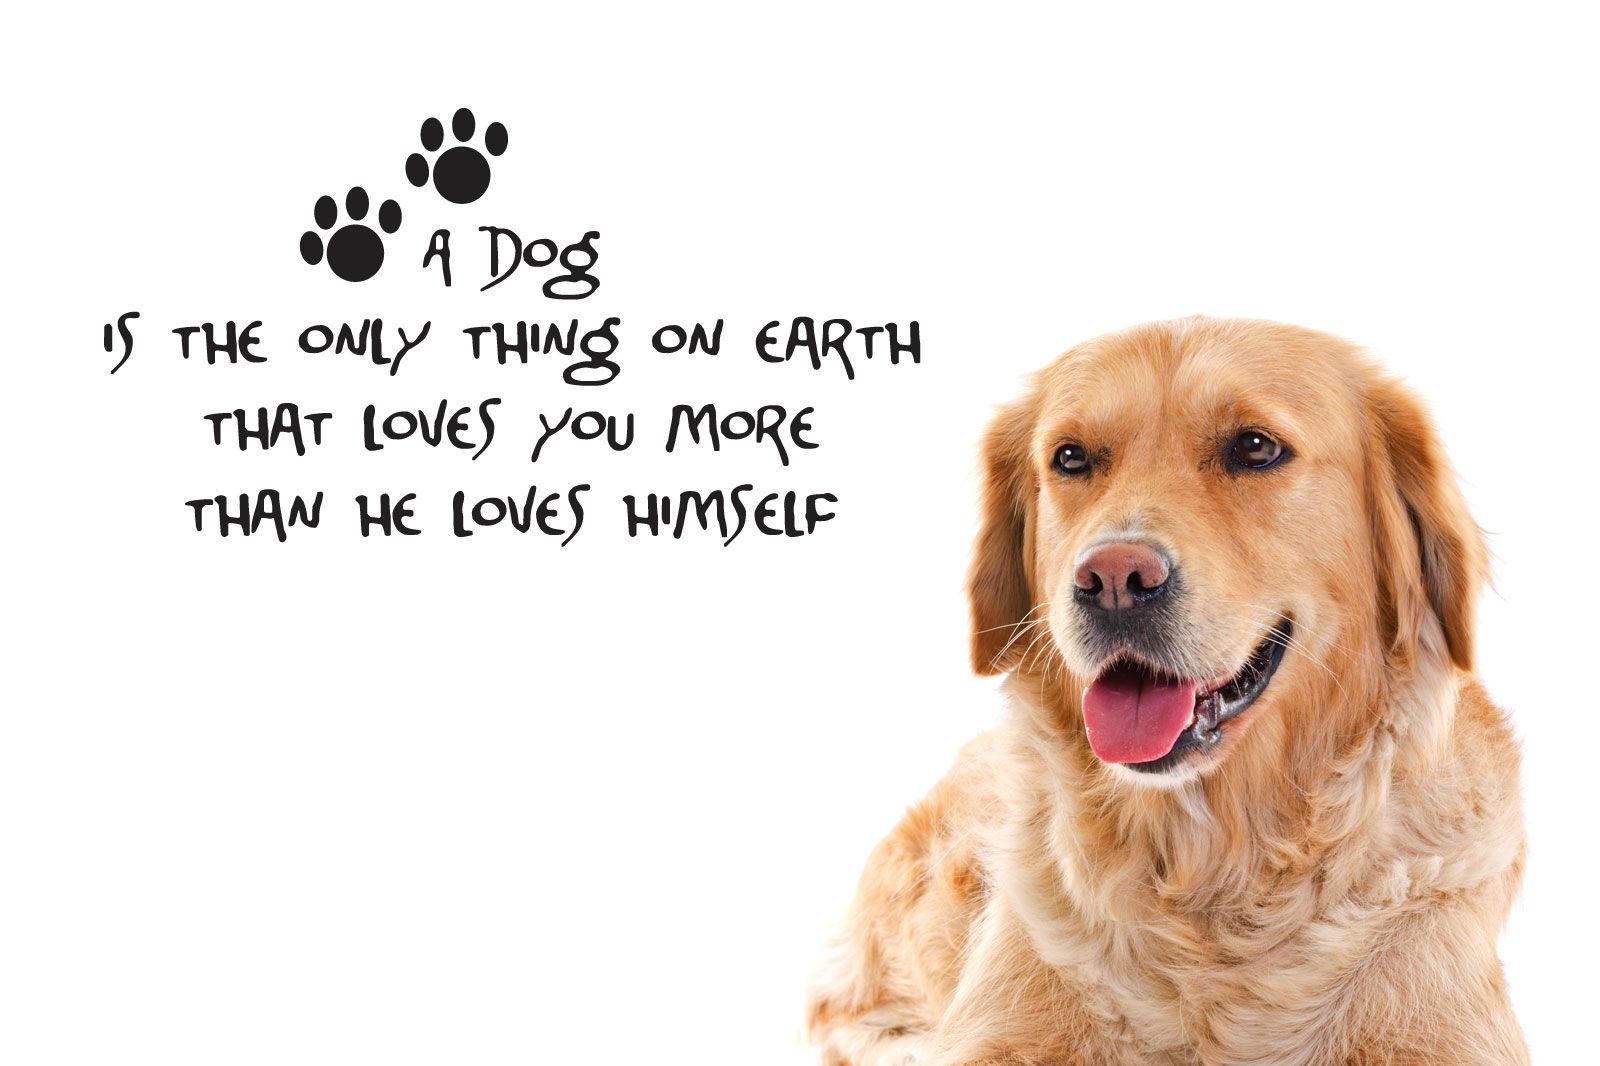 Dog sayings and quotes 2019